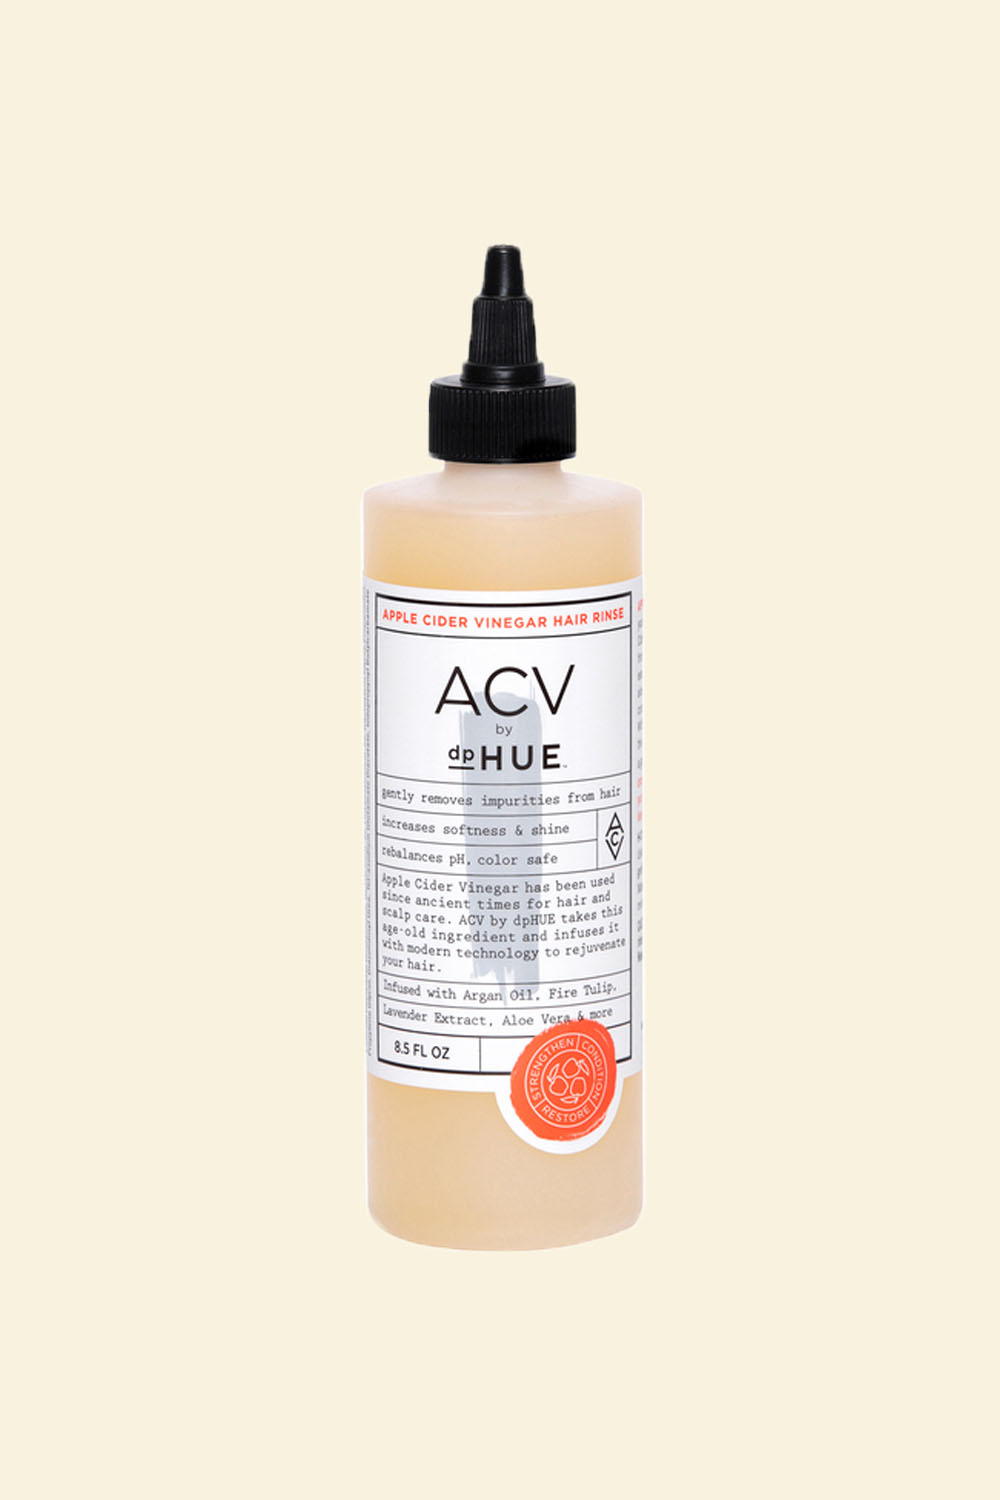 Alternative Shampoo Dry Shampoo Alternatives - Substitutes For Dry Shampoo